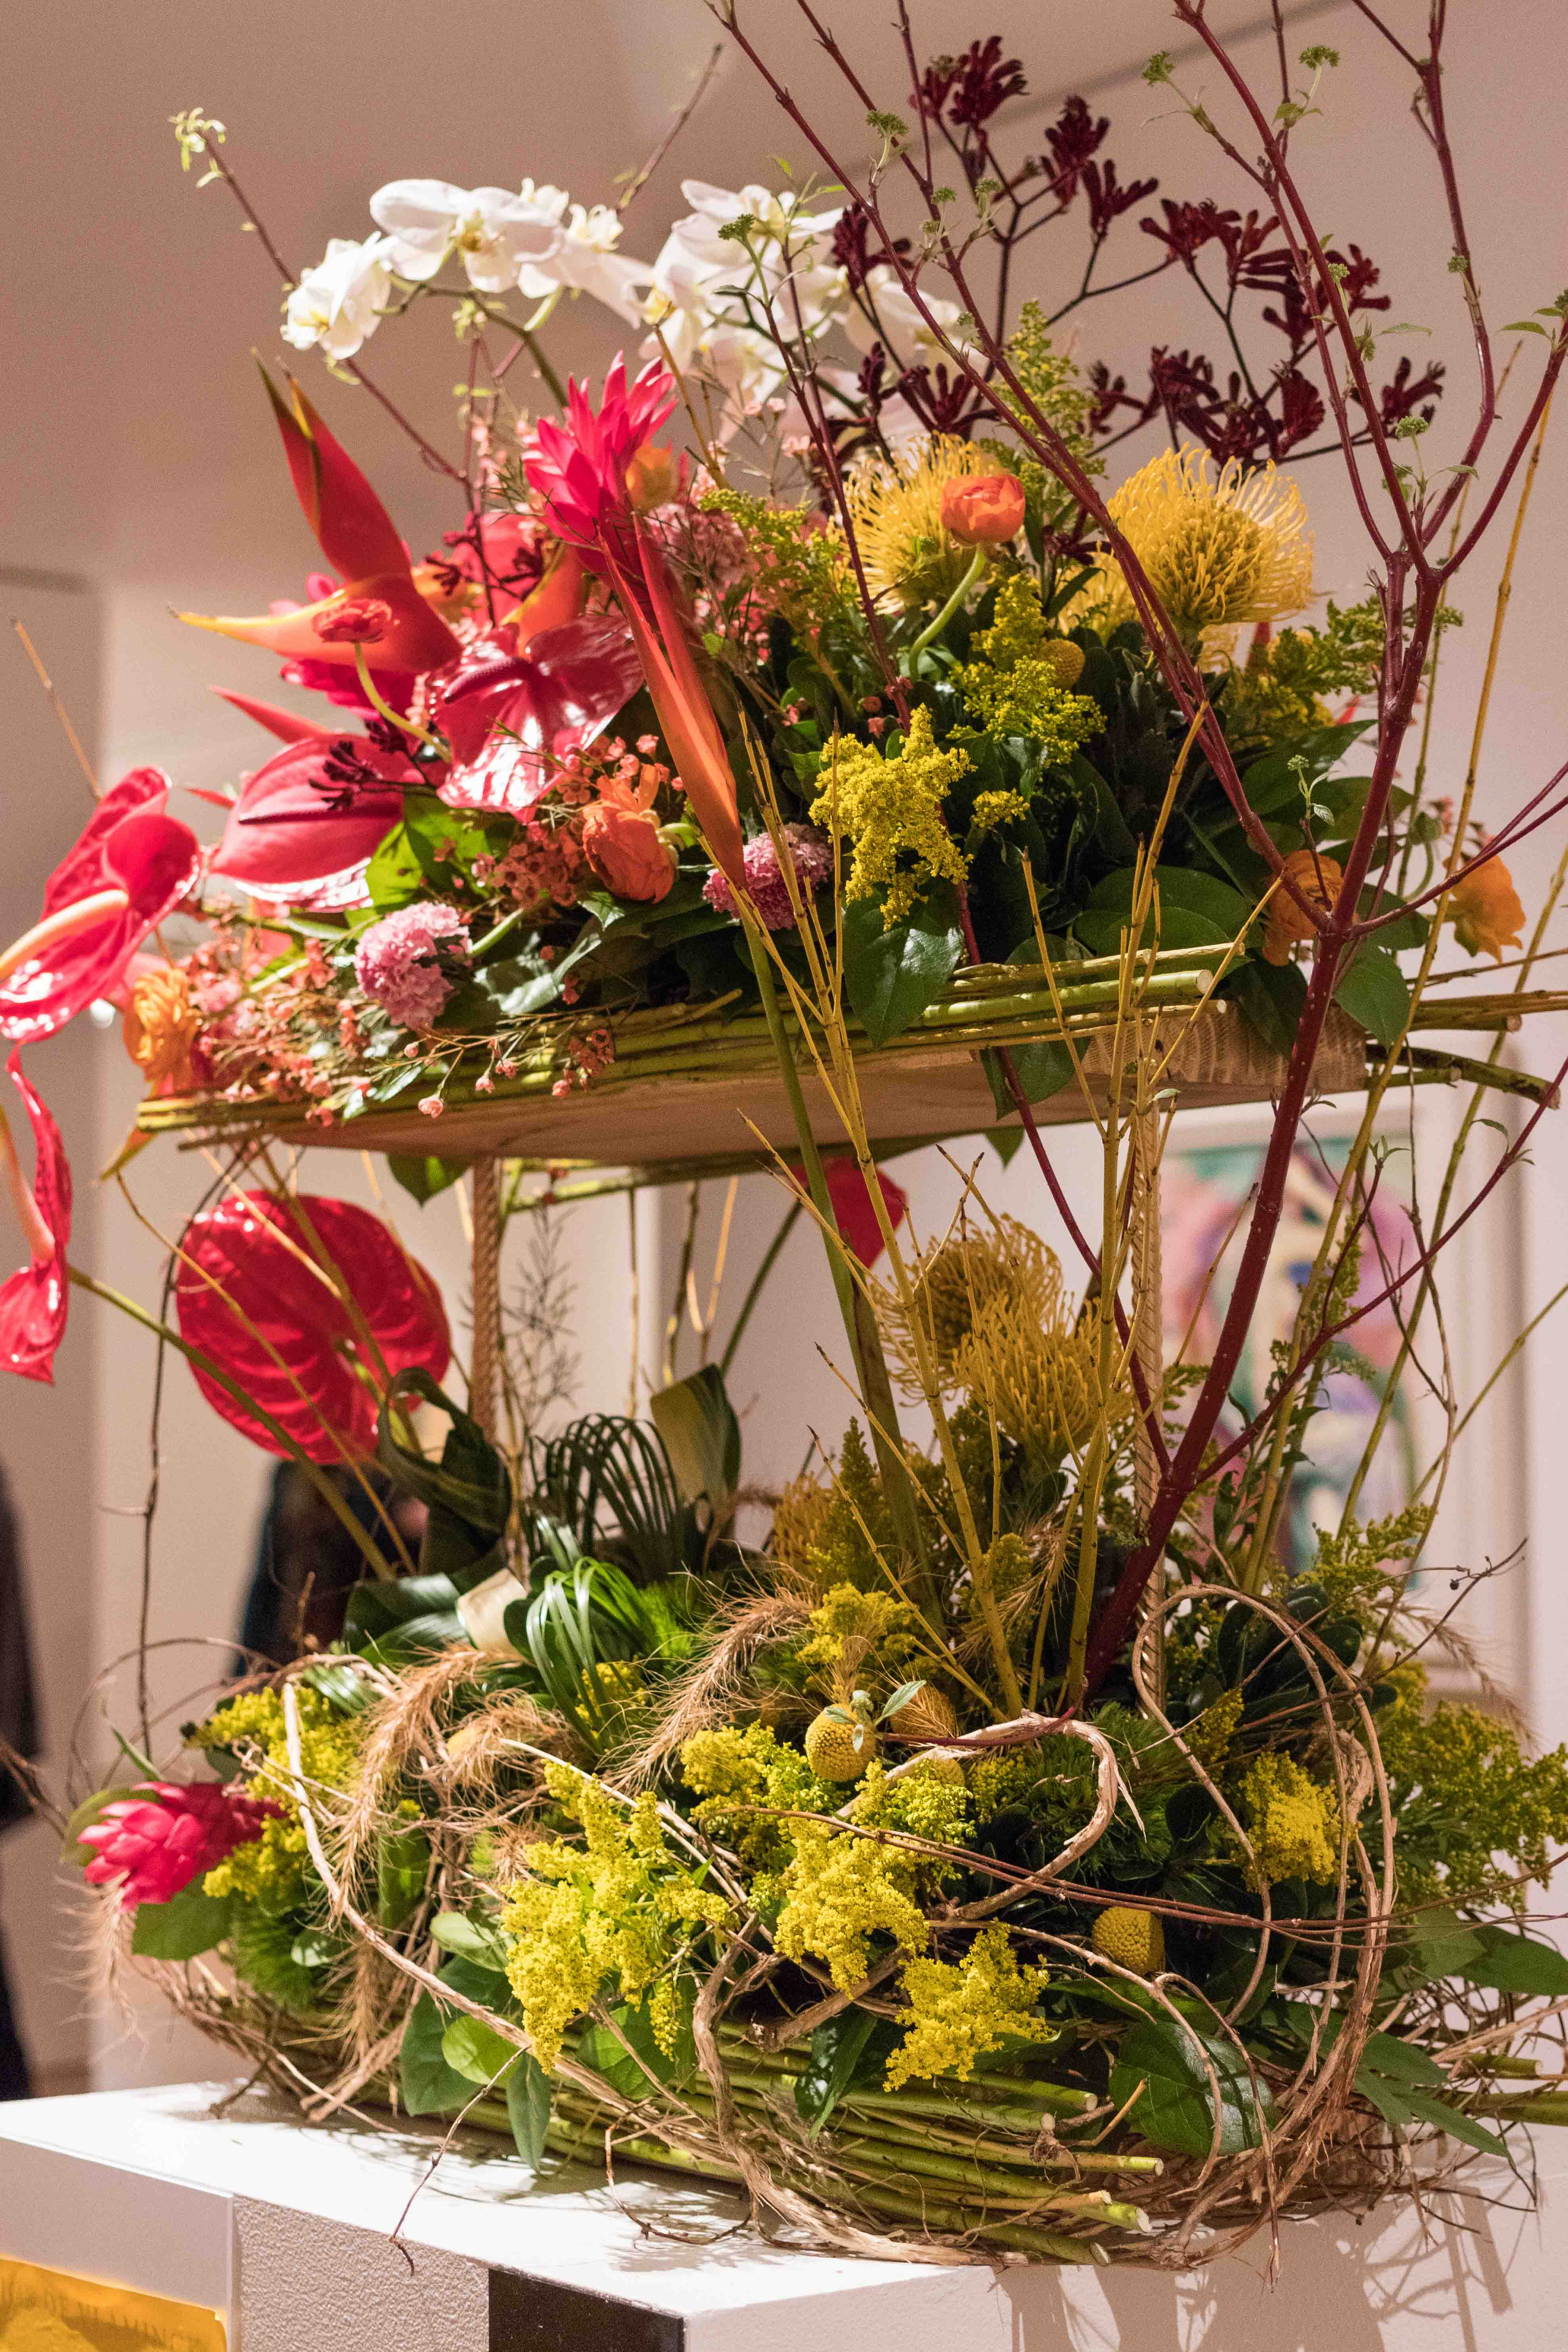 Art in Bloom 2018 at the Milwaukee Art Museum | https://www.roseclearfield.com